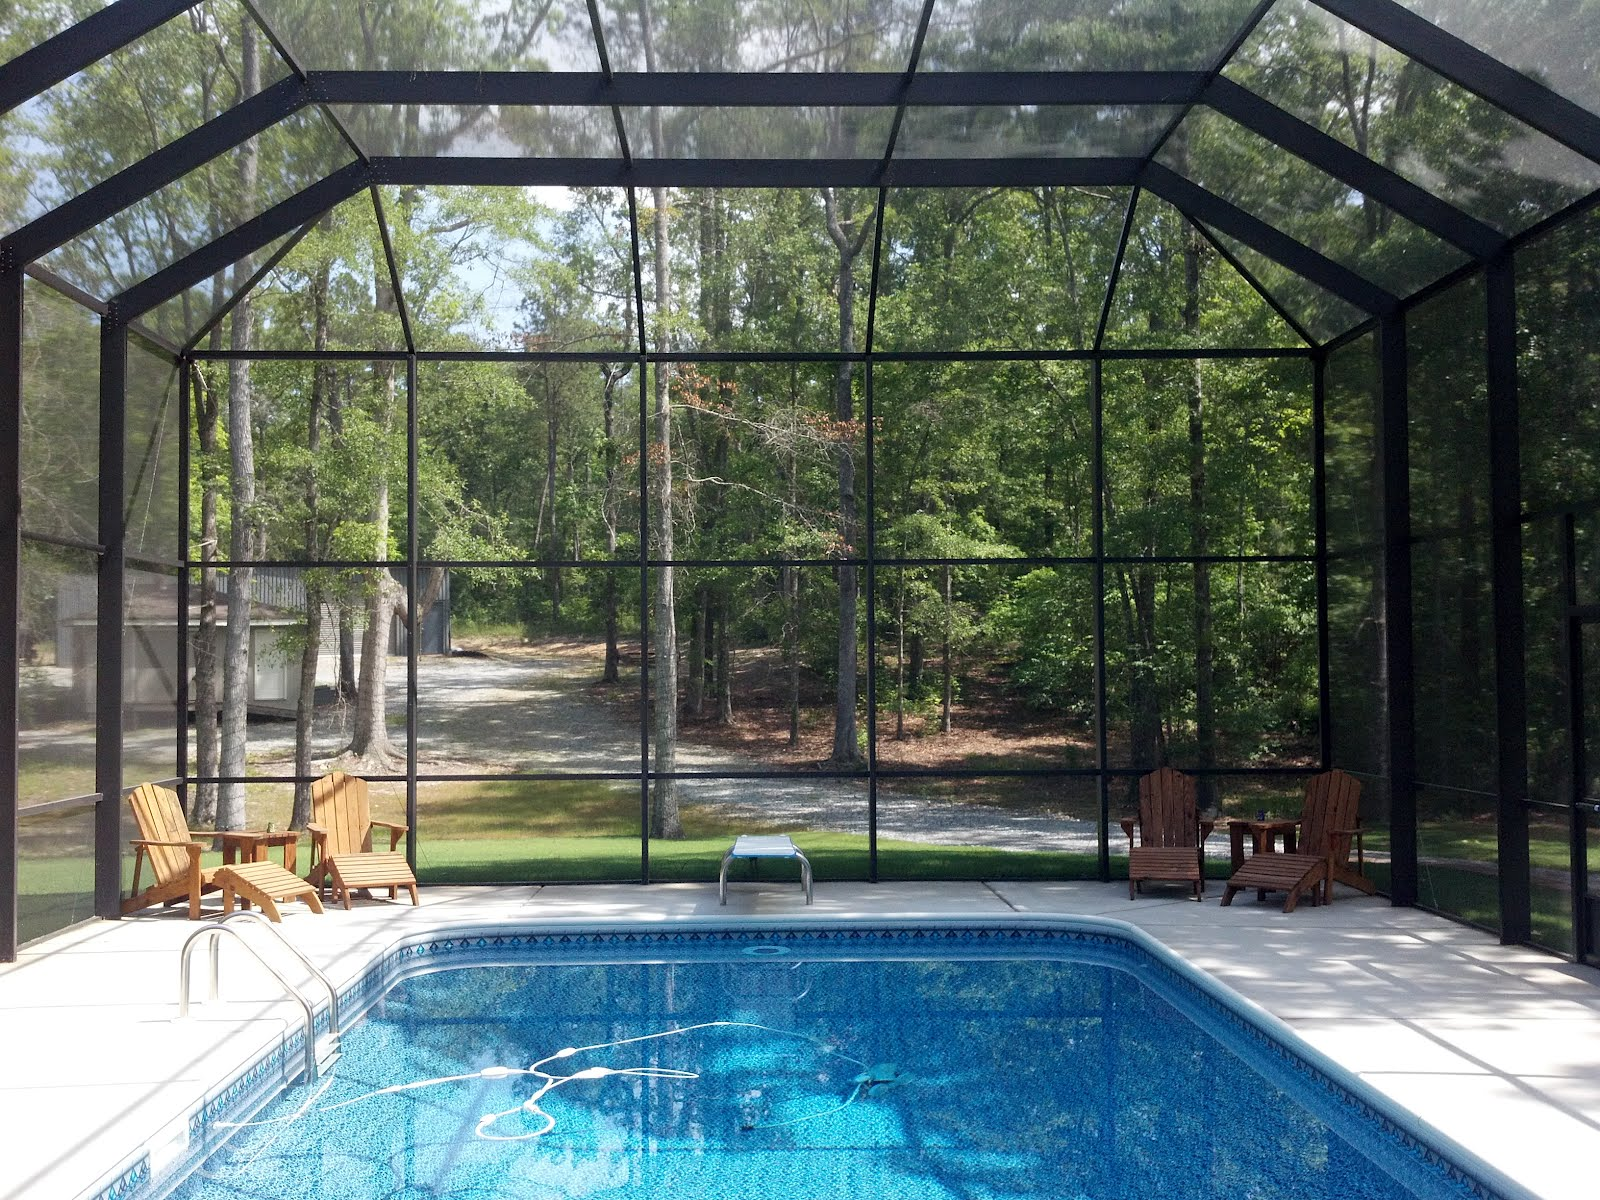 Pool enclosures usa pool enclosure faq - Swimming pool screen enclosures cost ...